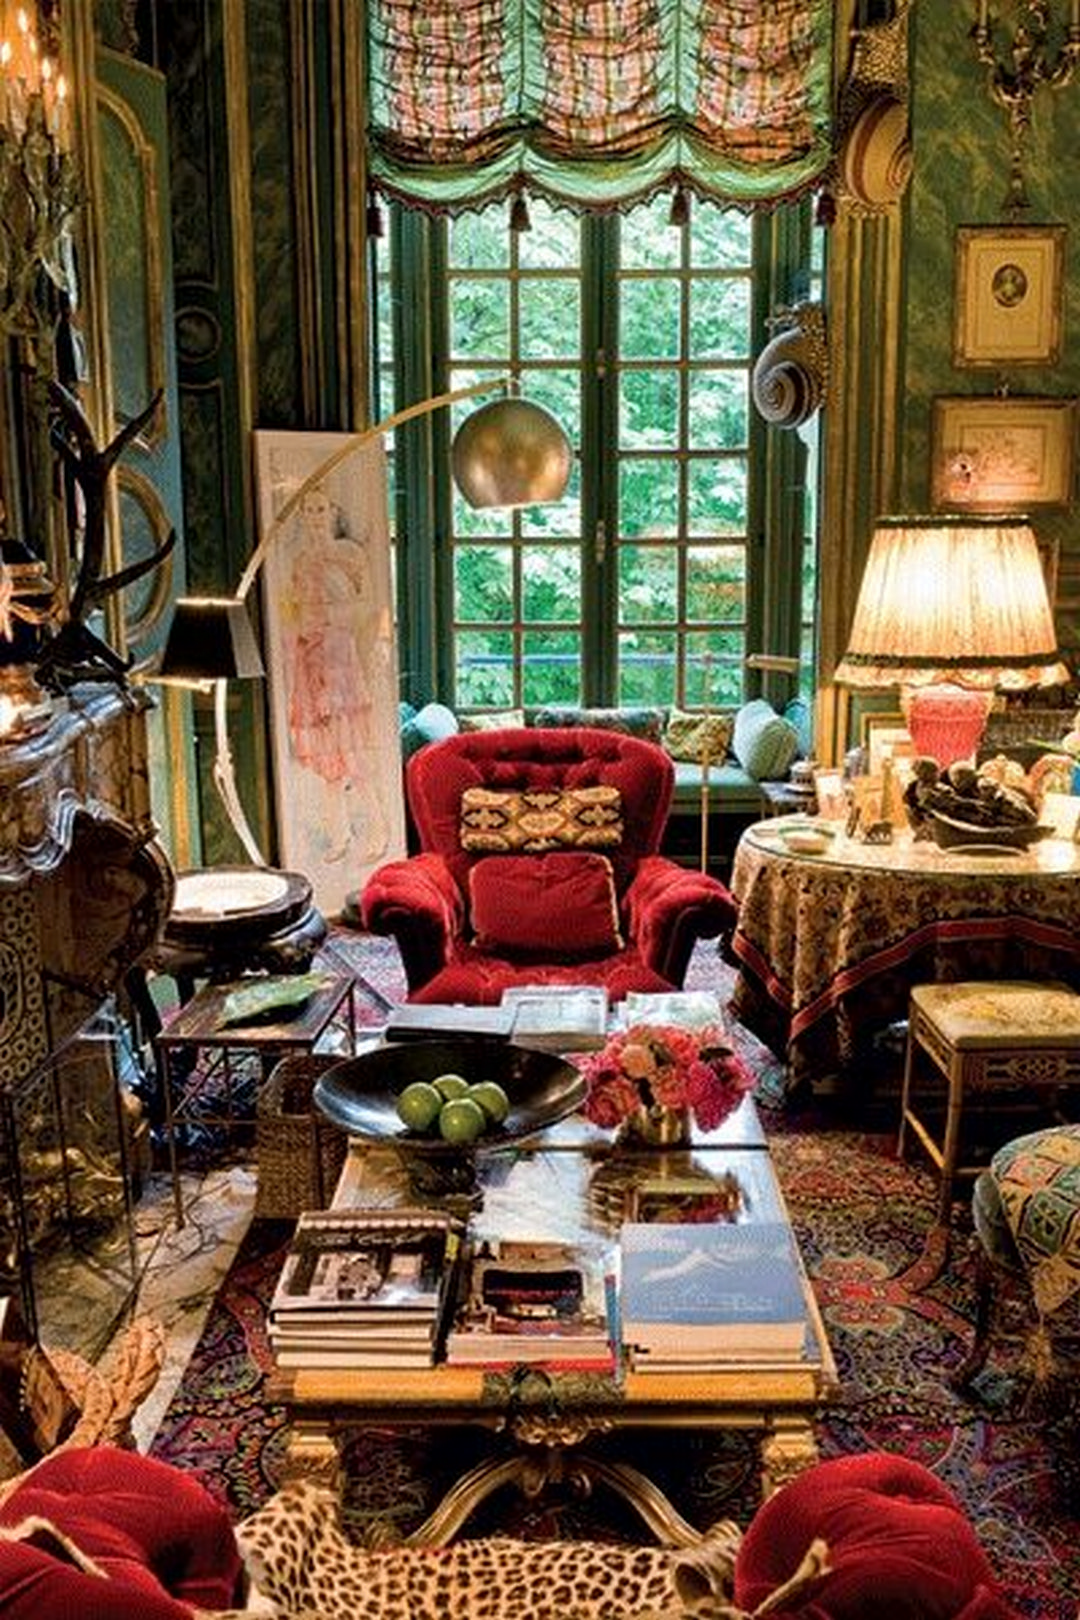 Stunning Maximalist Decor Ideas 84 Photos Gorgeous Interior